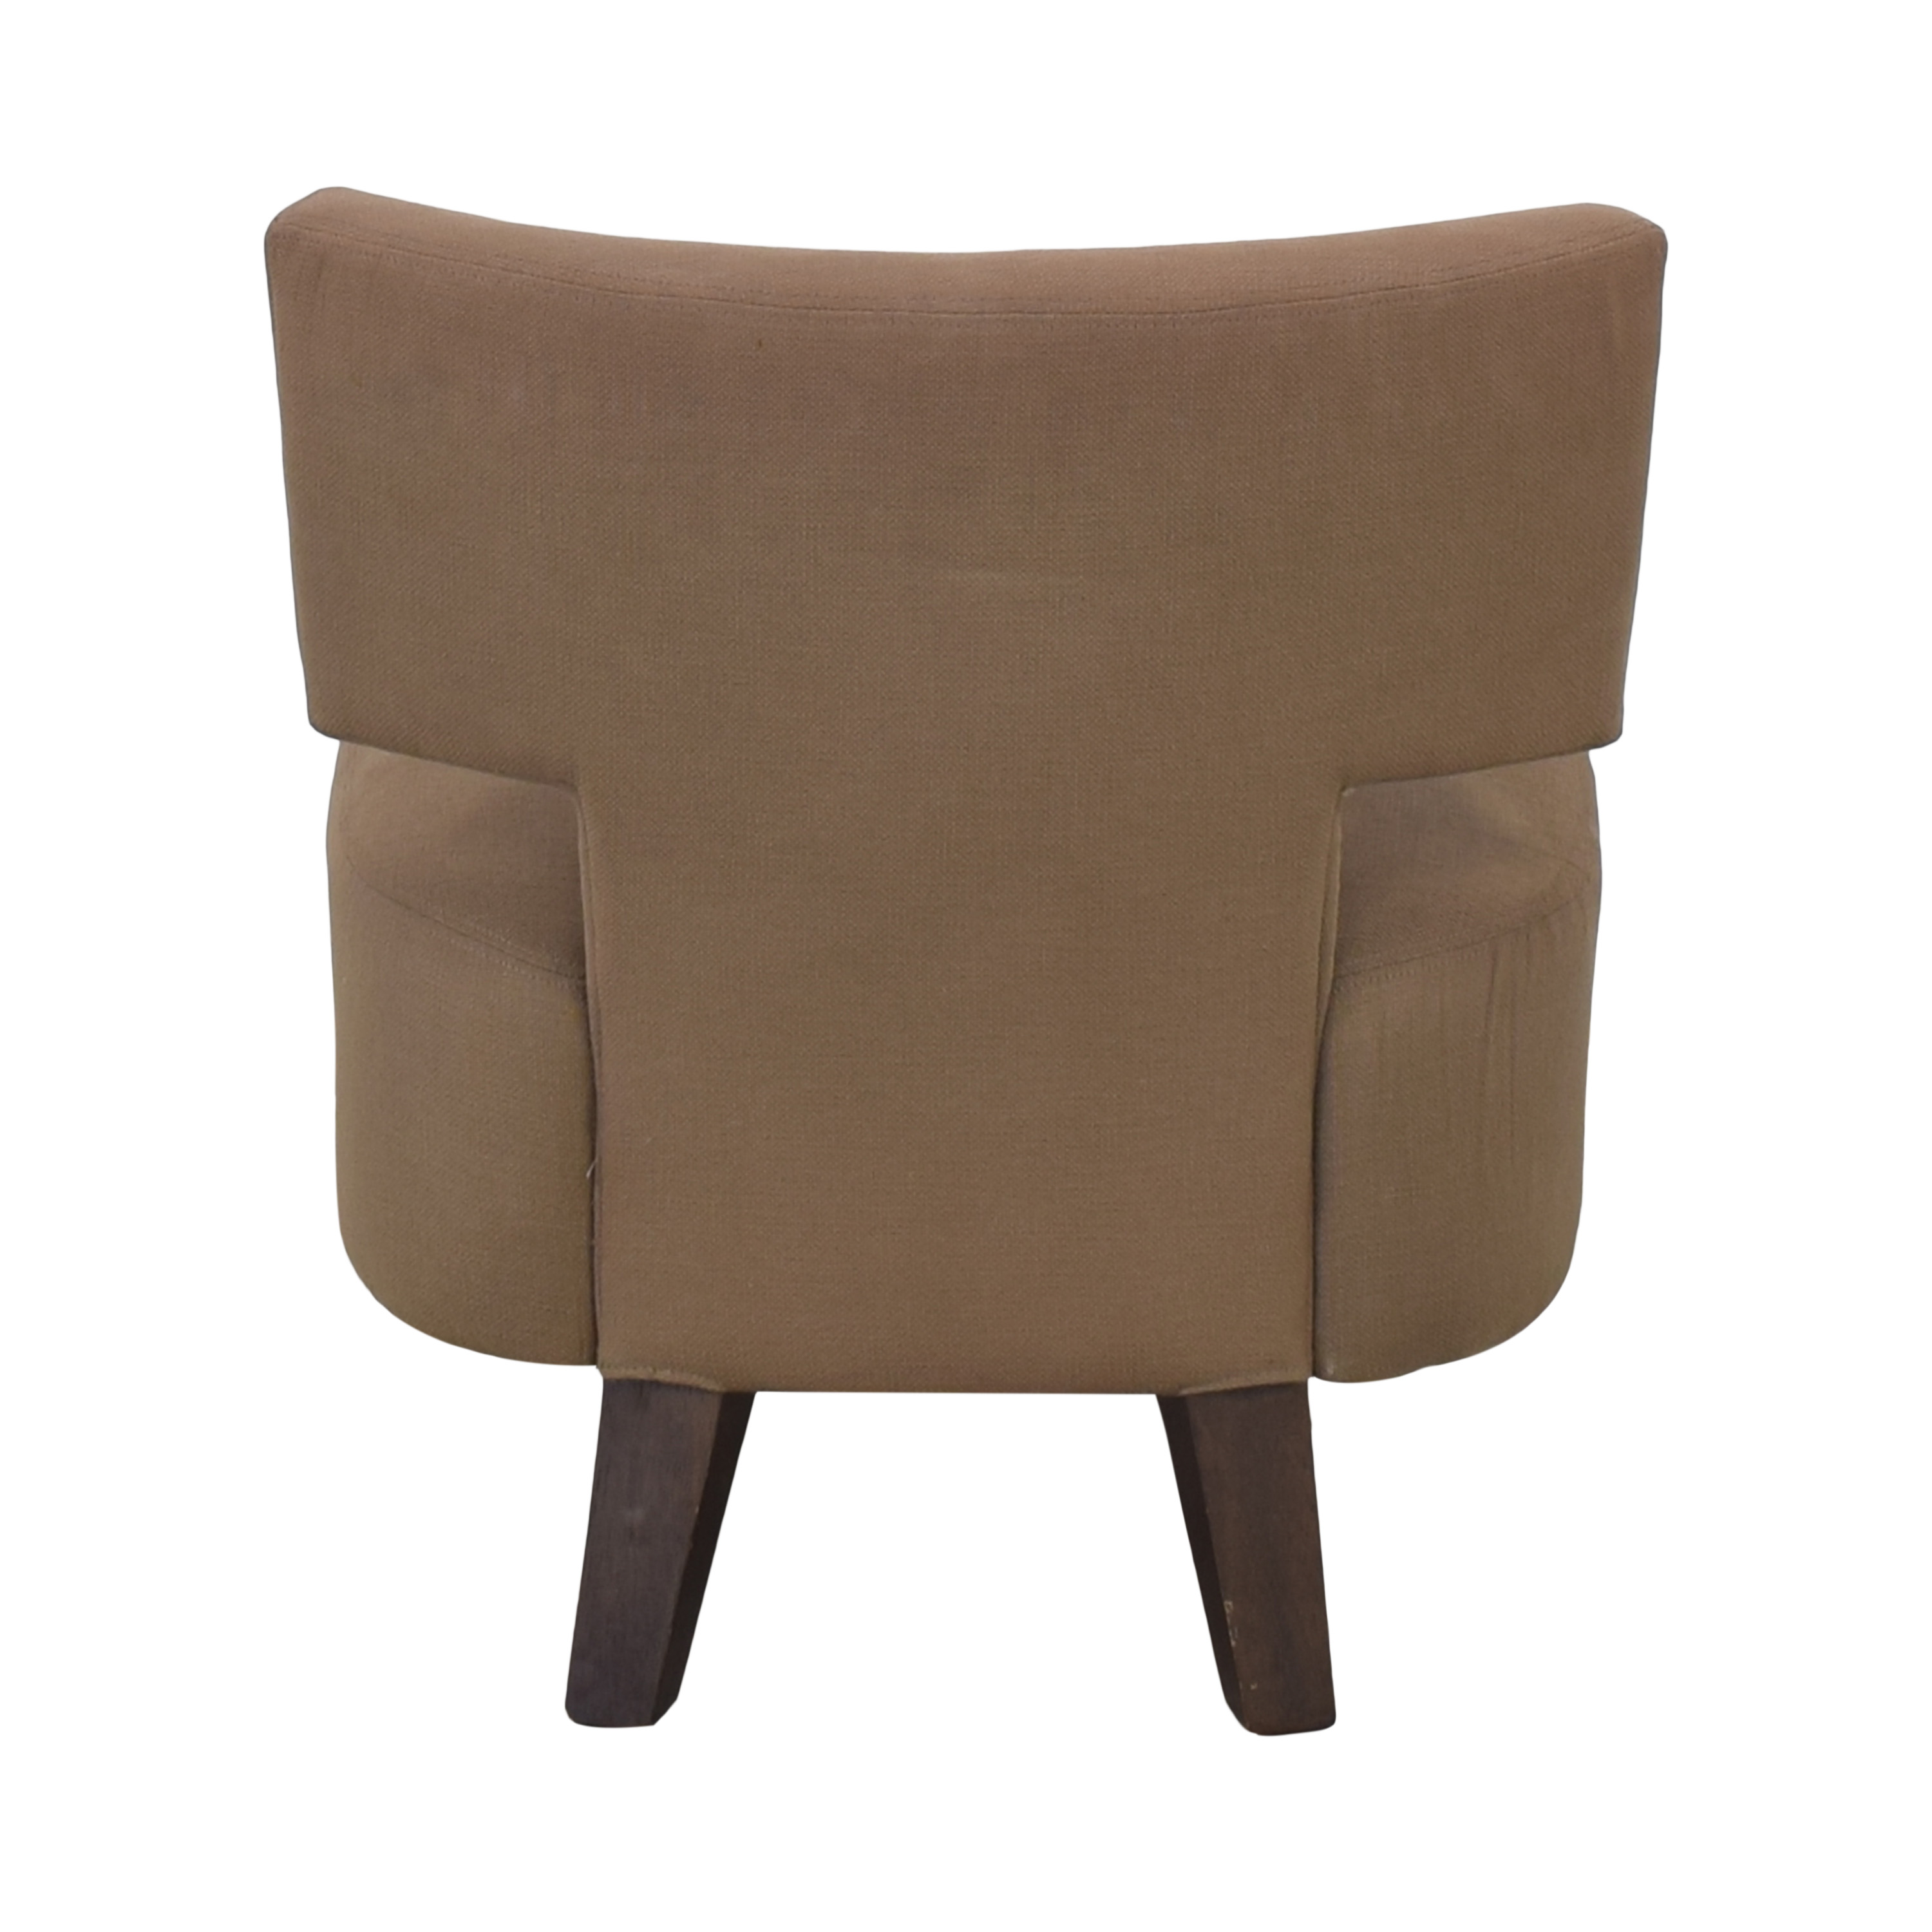 West Elm Geometric Lounge Chair / Accent Chairs